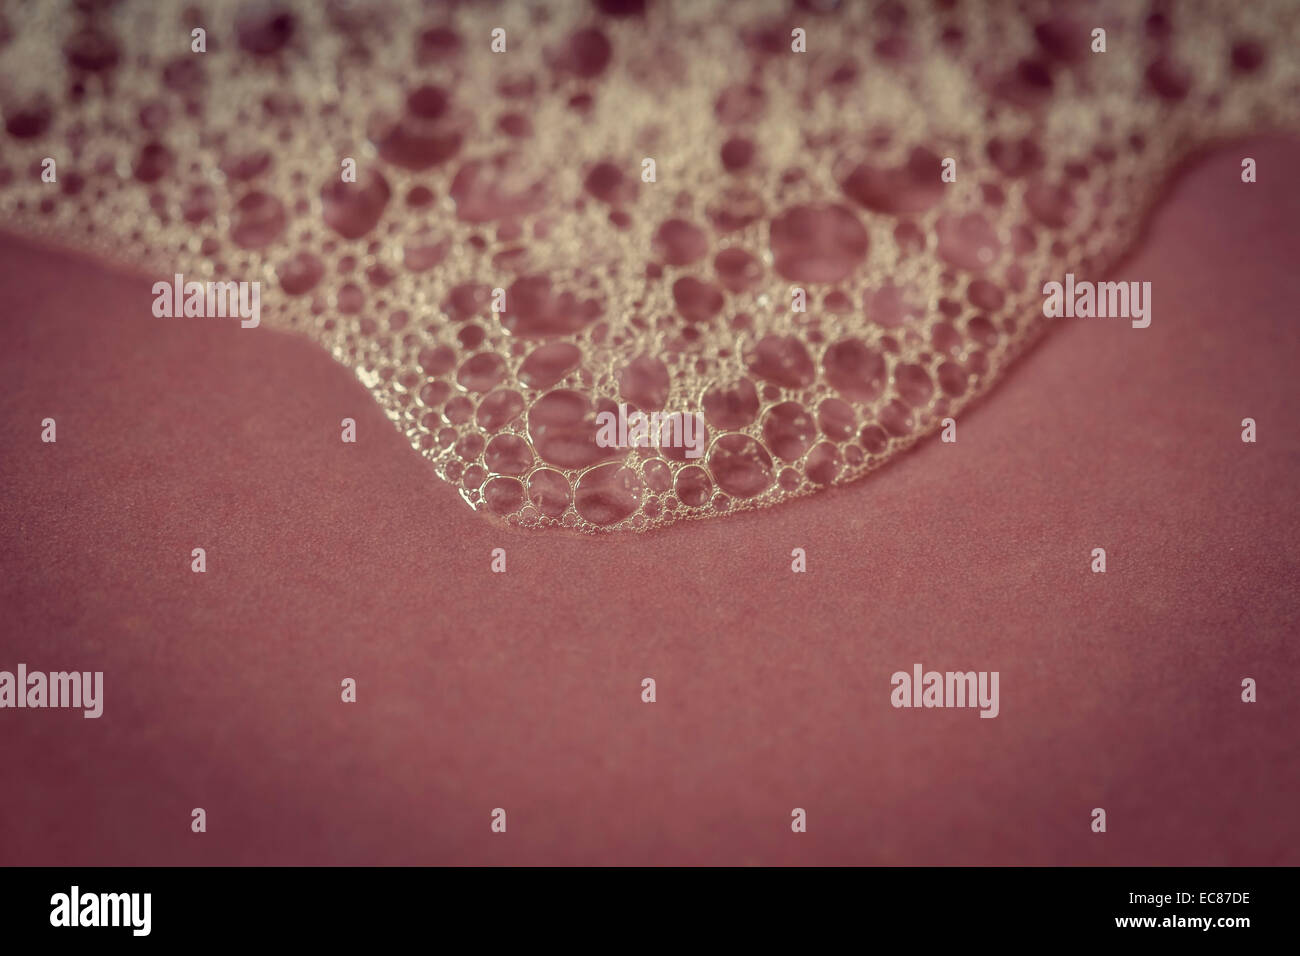 foam bubbles, abstract background. - Stock Image